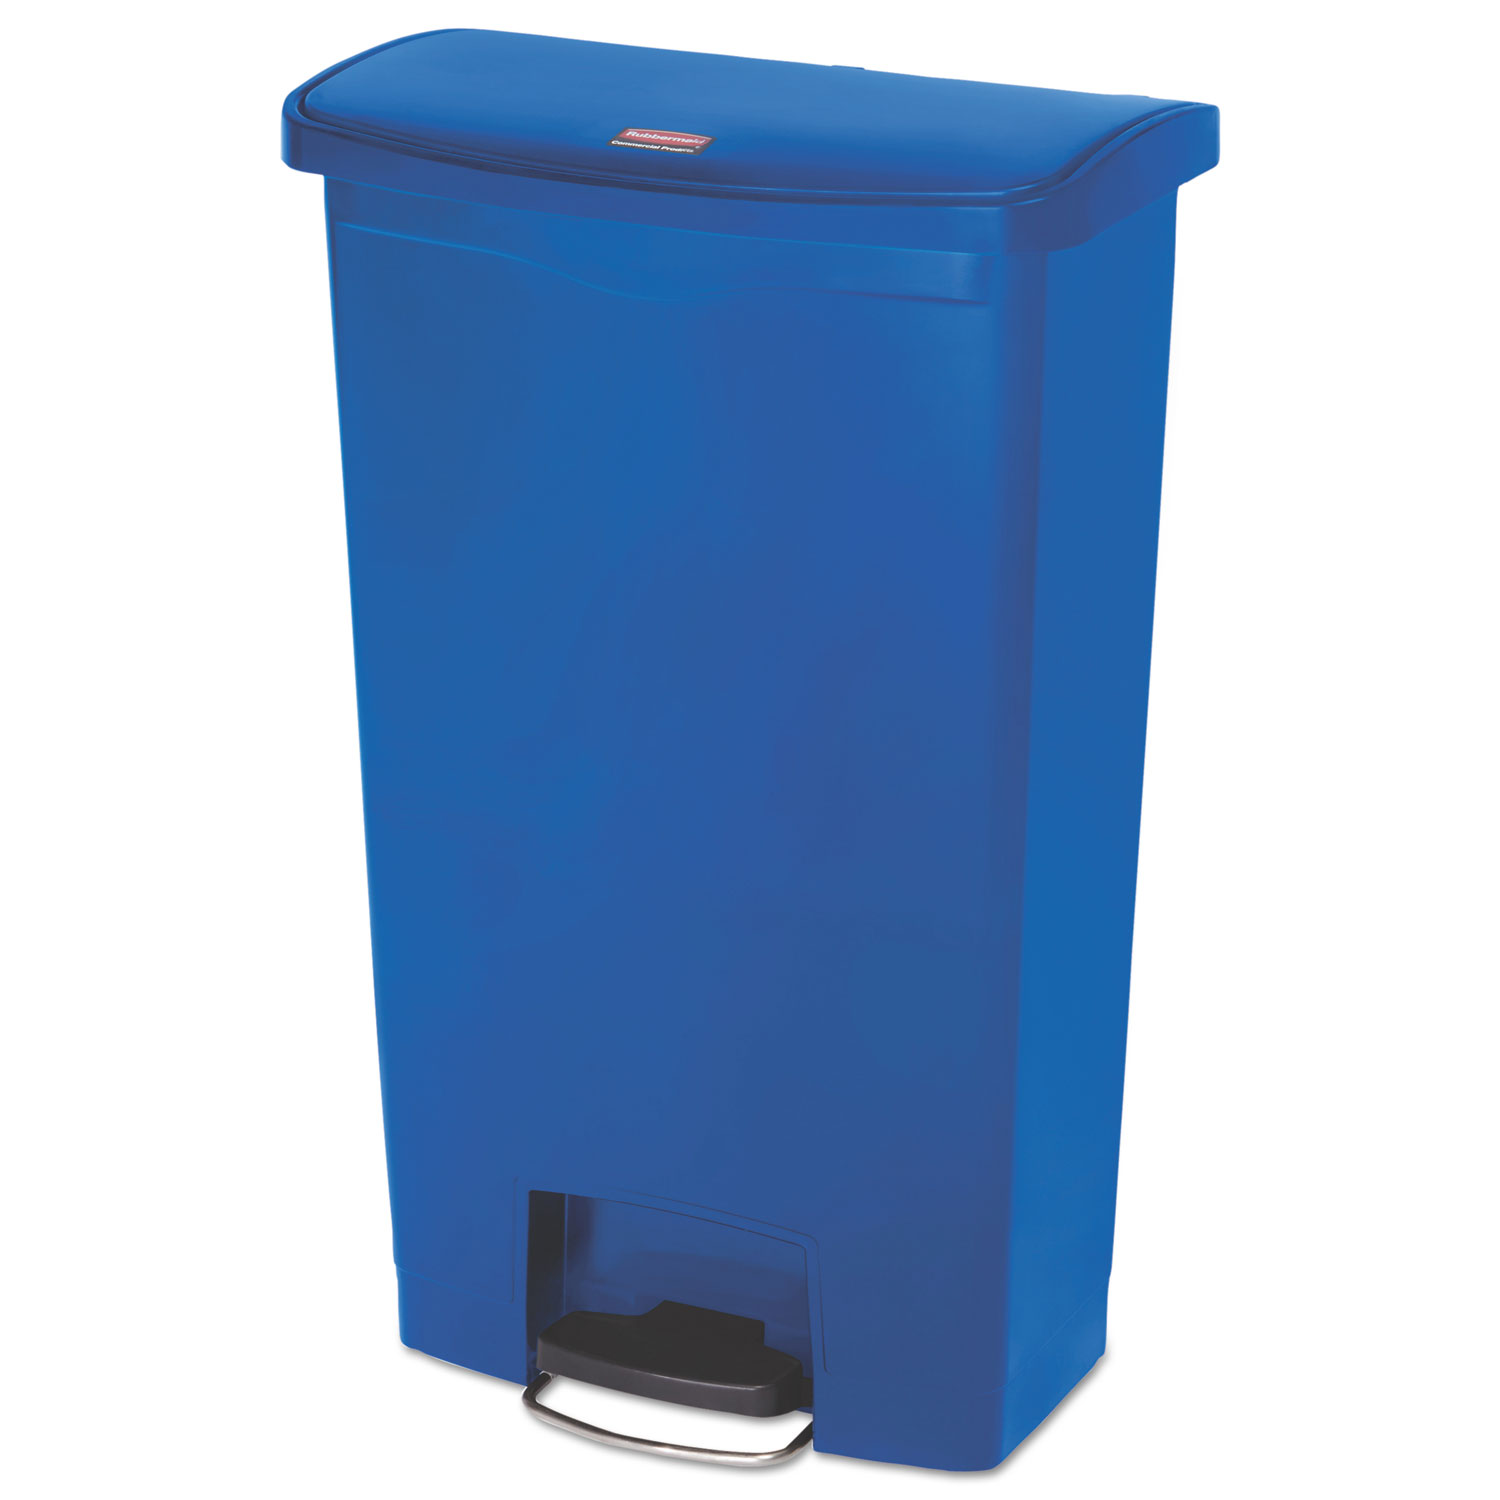 Rubbermaid Commercial Slim Jim Front Step Style 18 gal. Resin Step-On Container, Blue